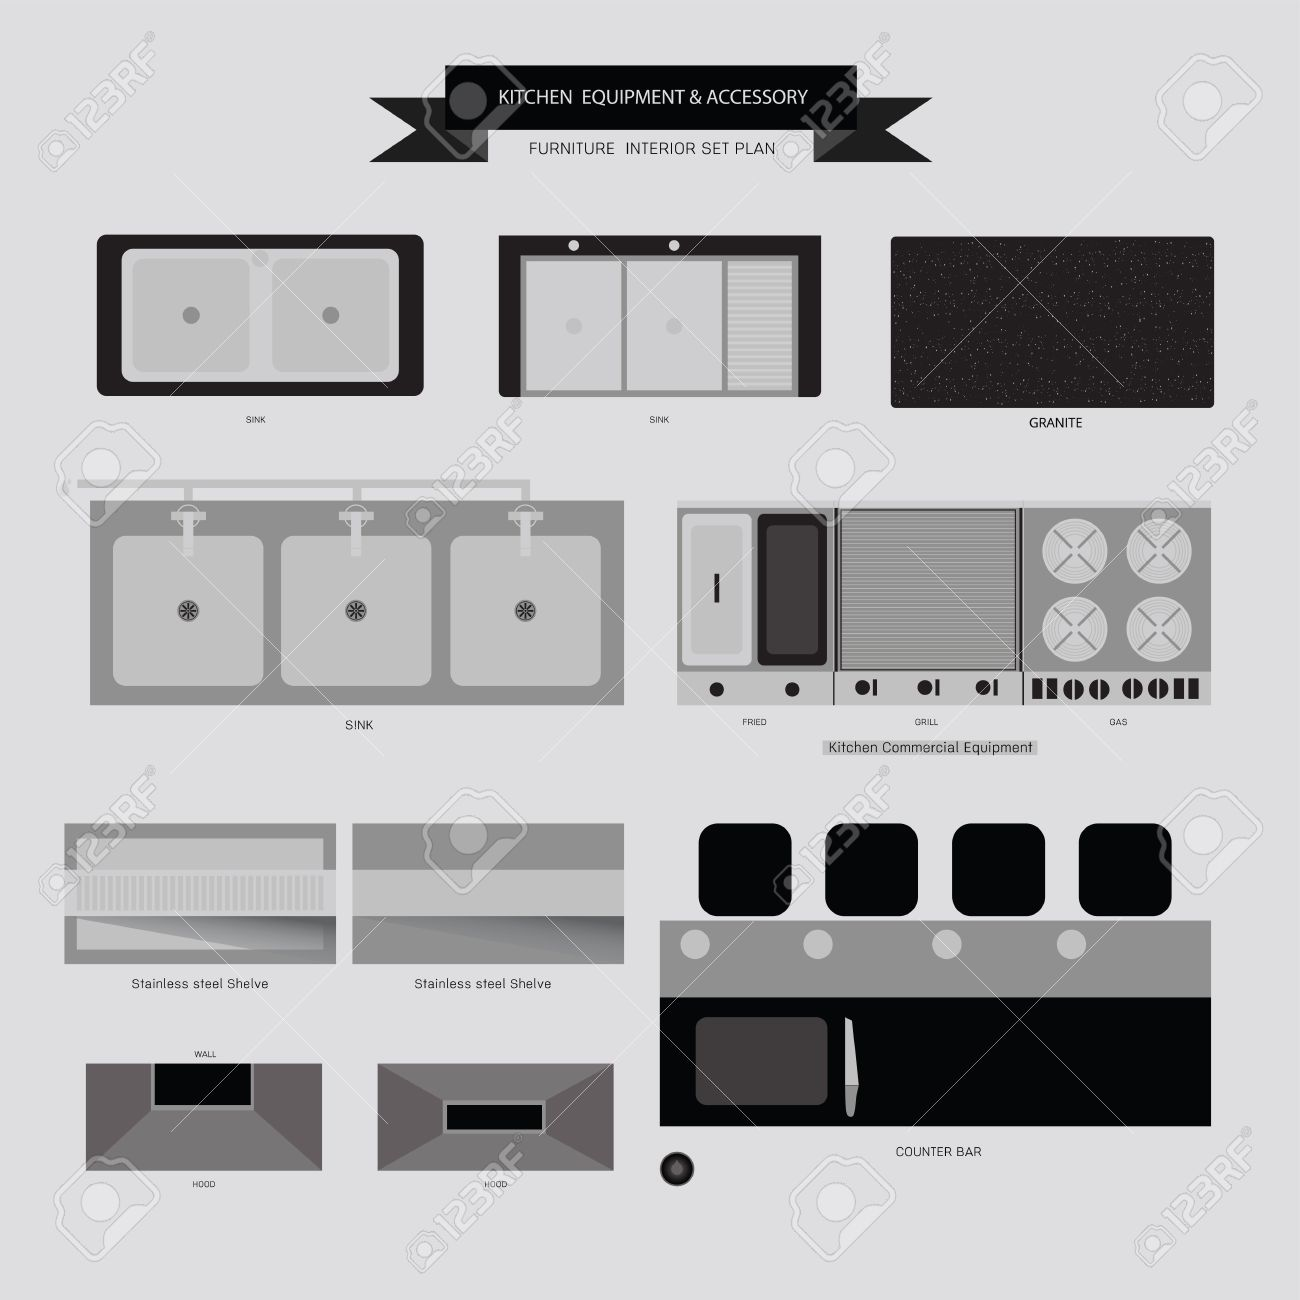 Kitchen Equipment And Accessory Furniture Icon Top View For